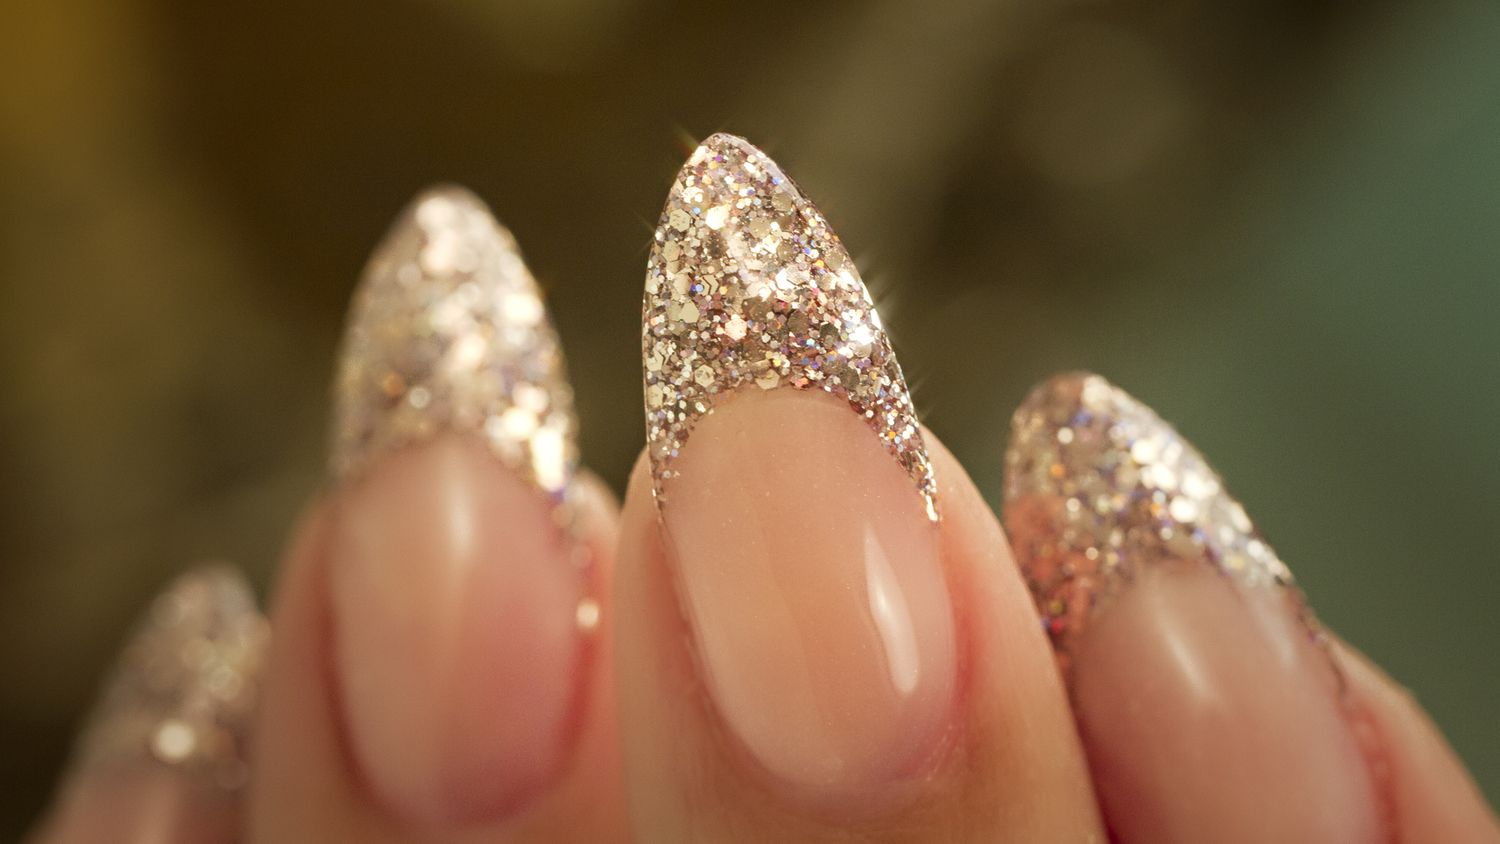 Almond shaped French manicure with gold glittery tip. | Nails ...